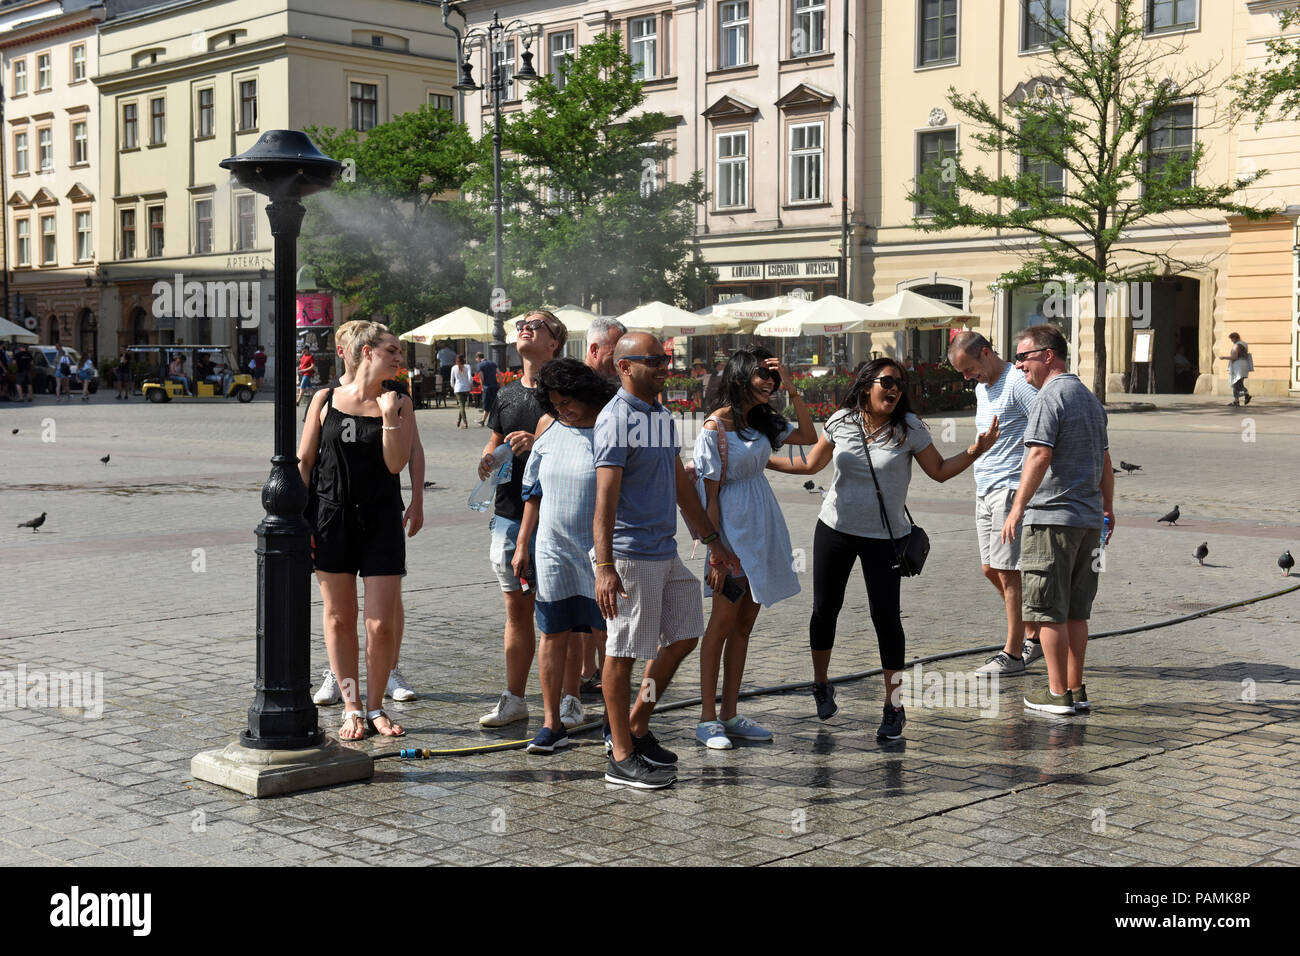 People cooling down in the spray of water mist as temperatures soar into the thirties in Krakow Poland 2018 - Stock Image